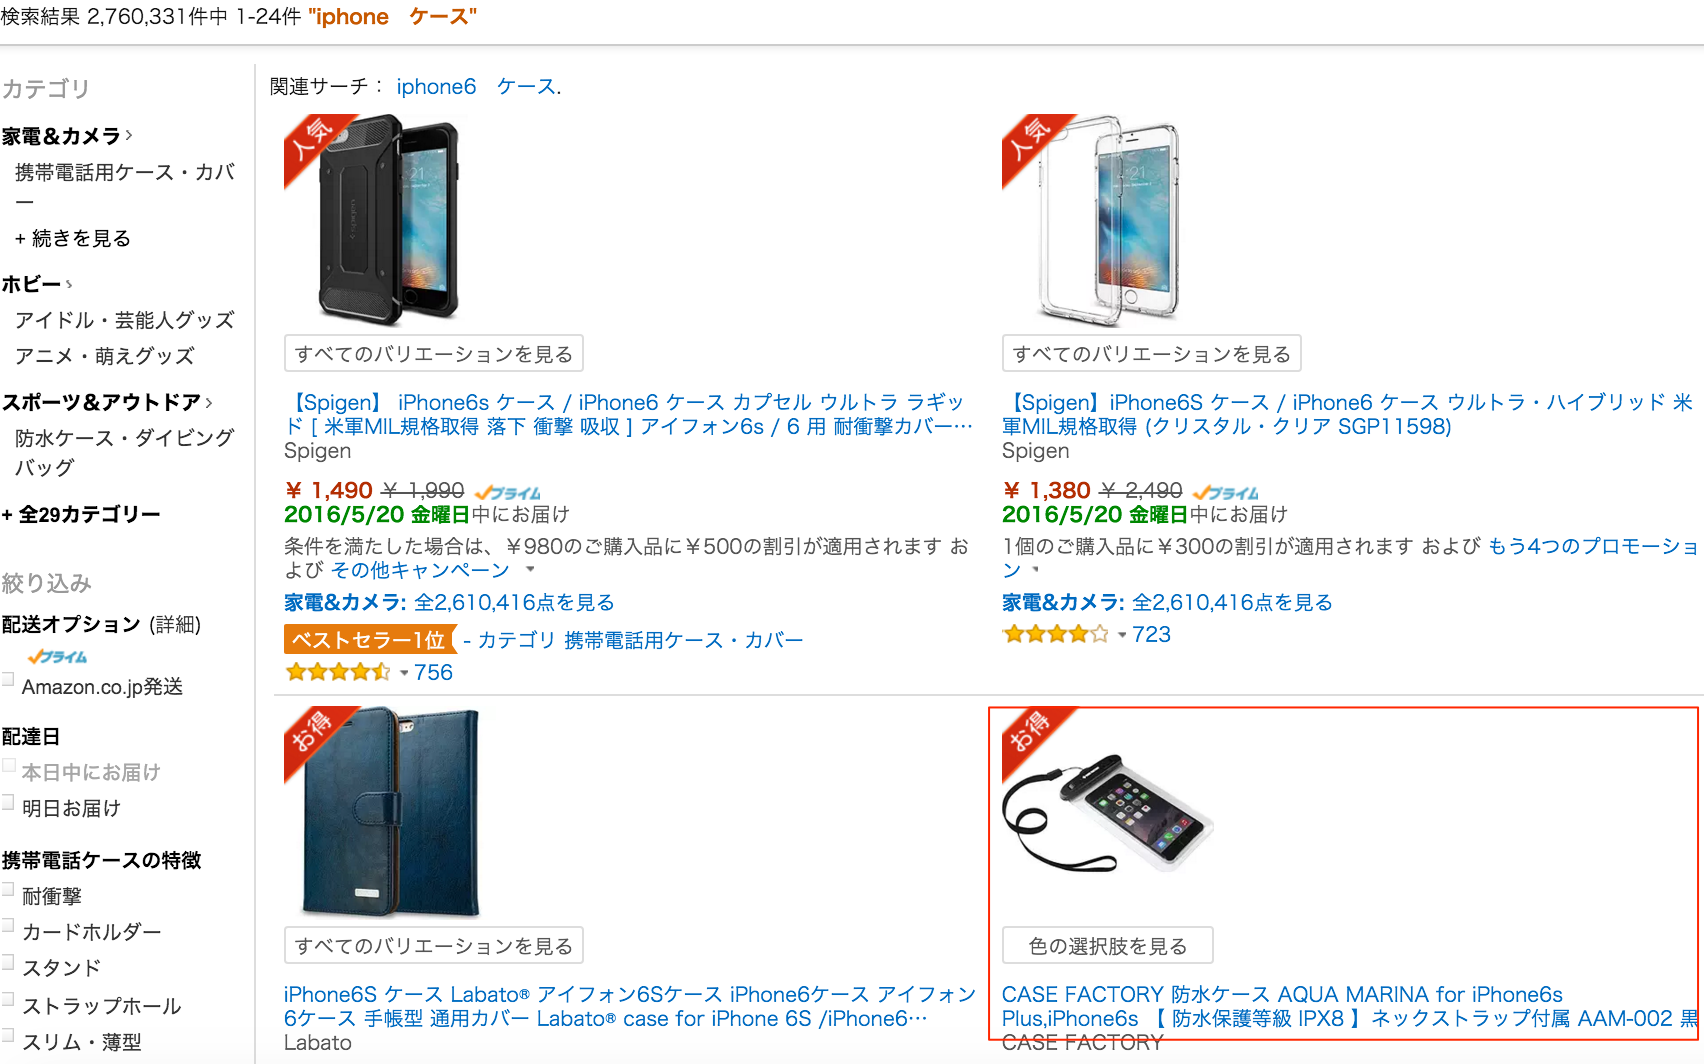 Amazon_co_jp__iphone ケース 2